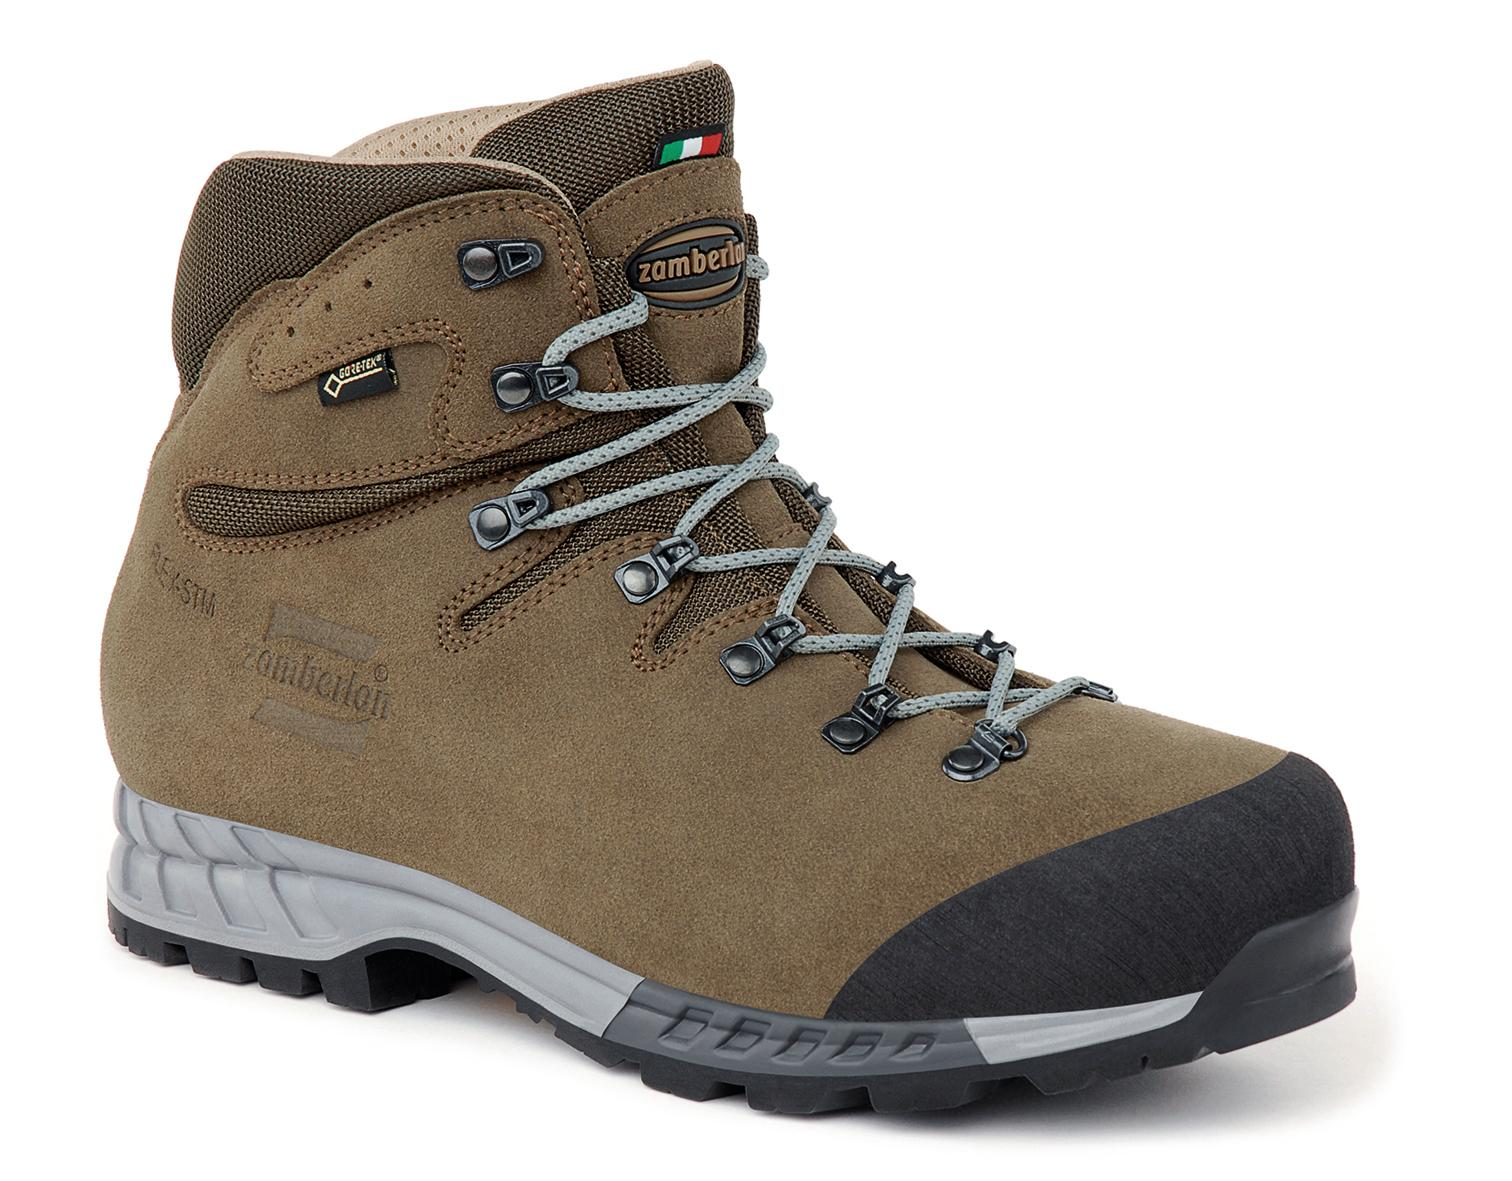 900 ROLLE EVO GTX   -   Hiking  Boots   -   Brown